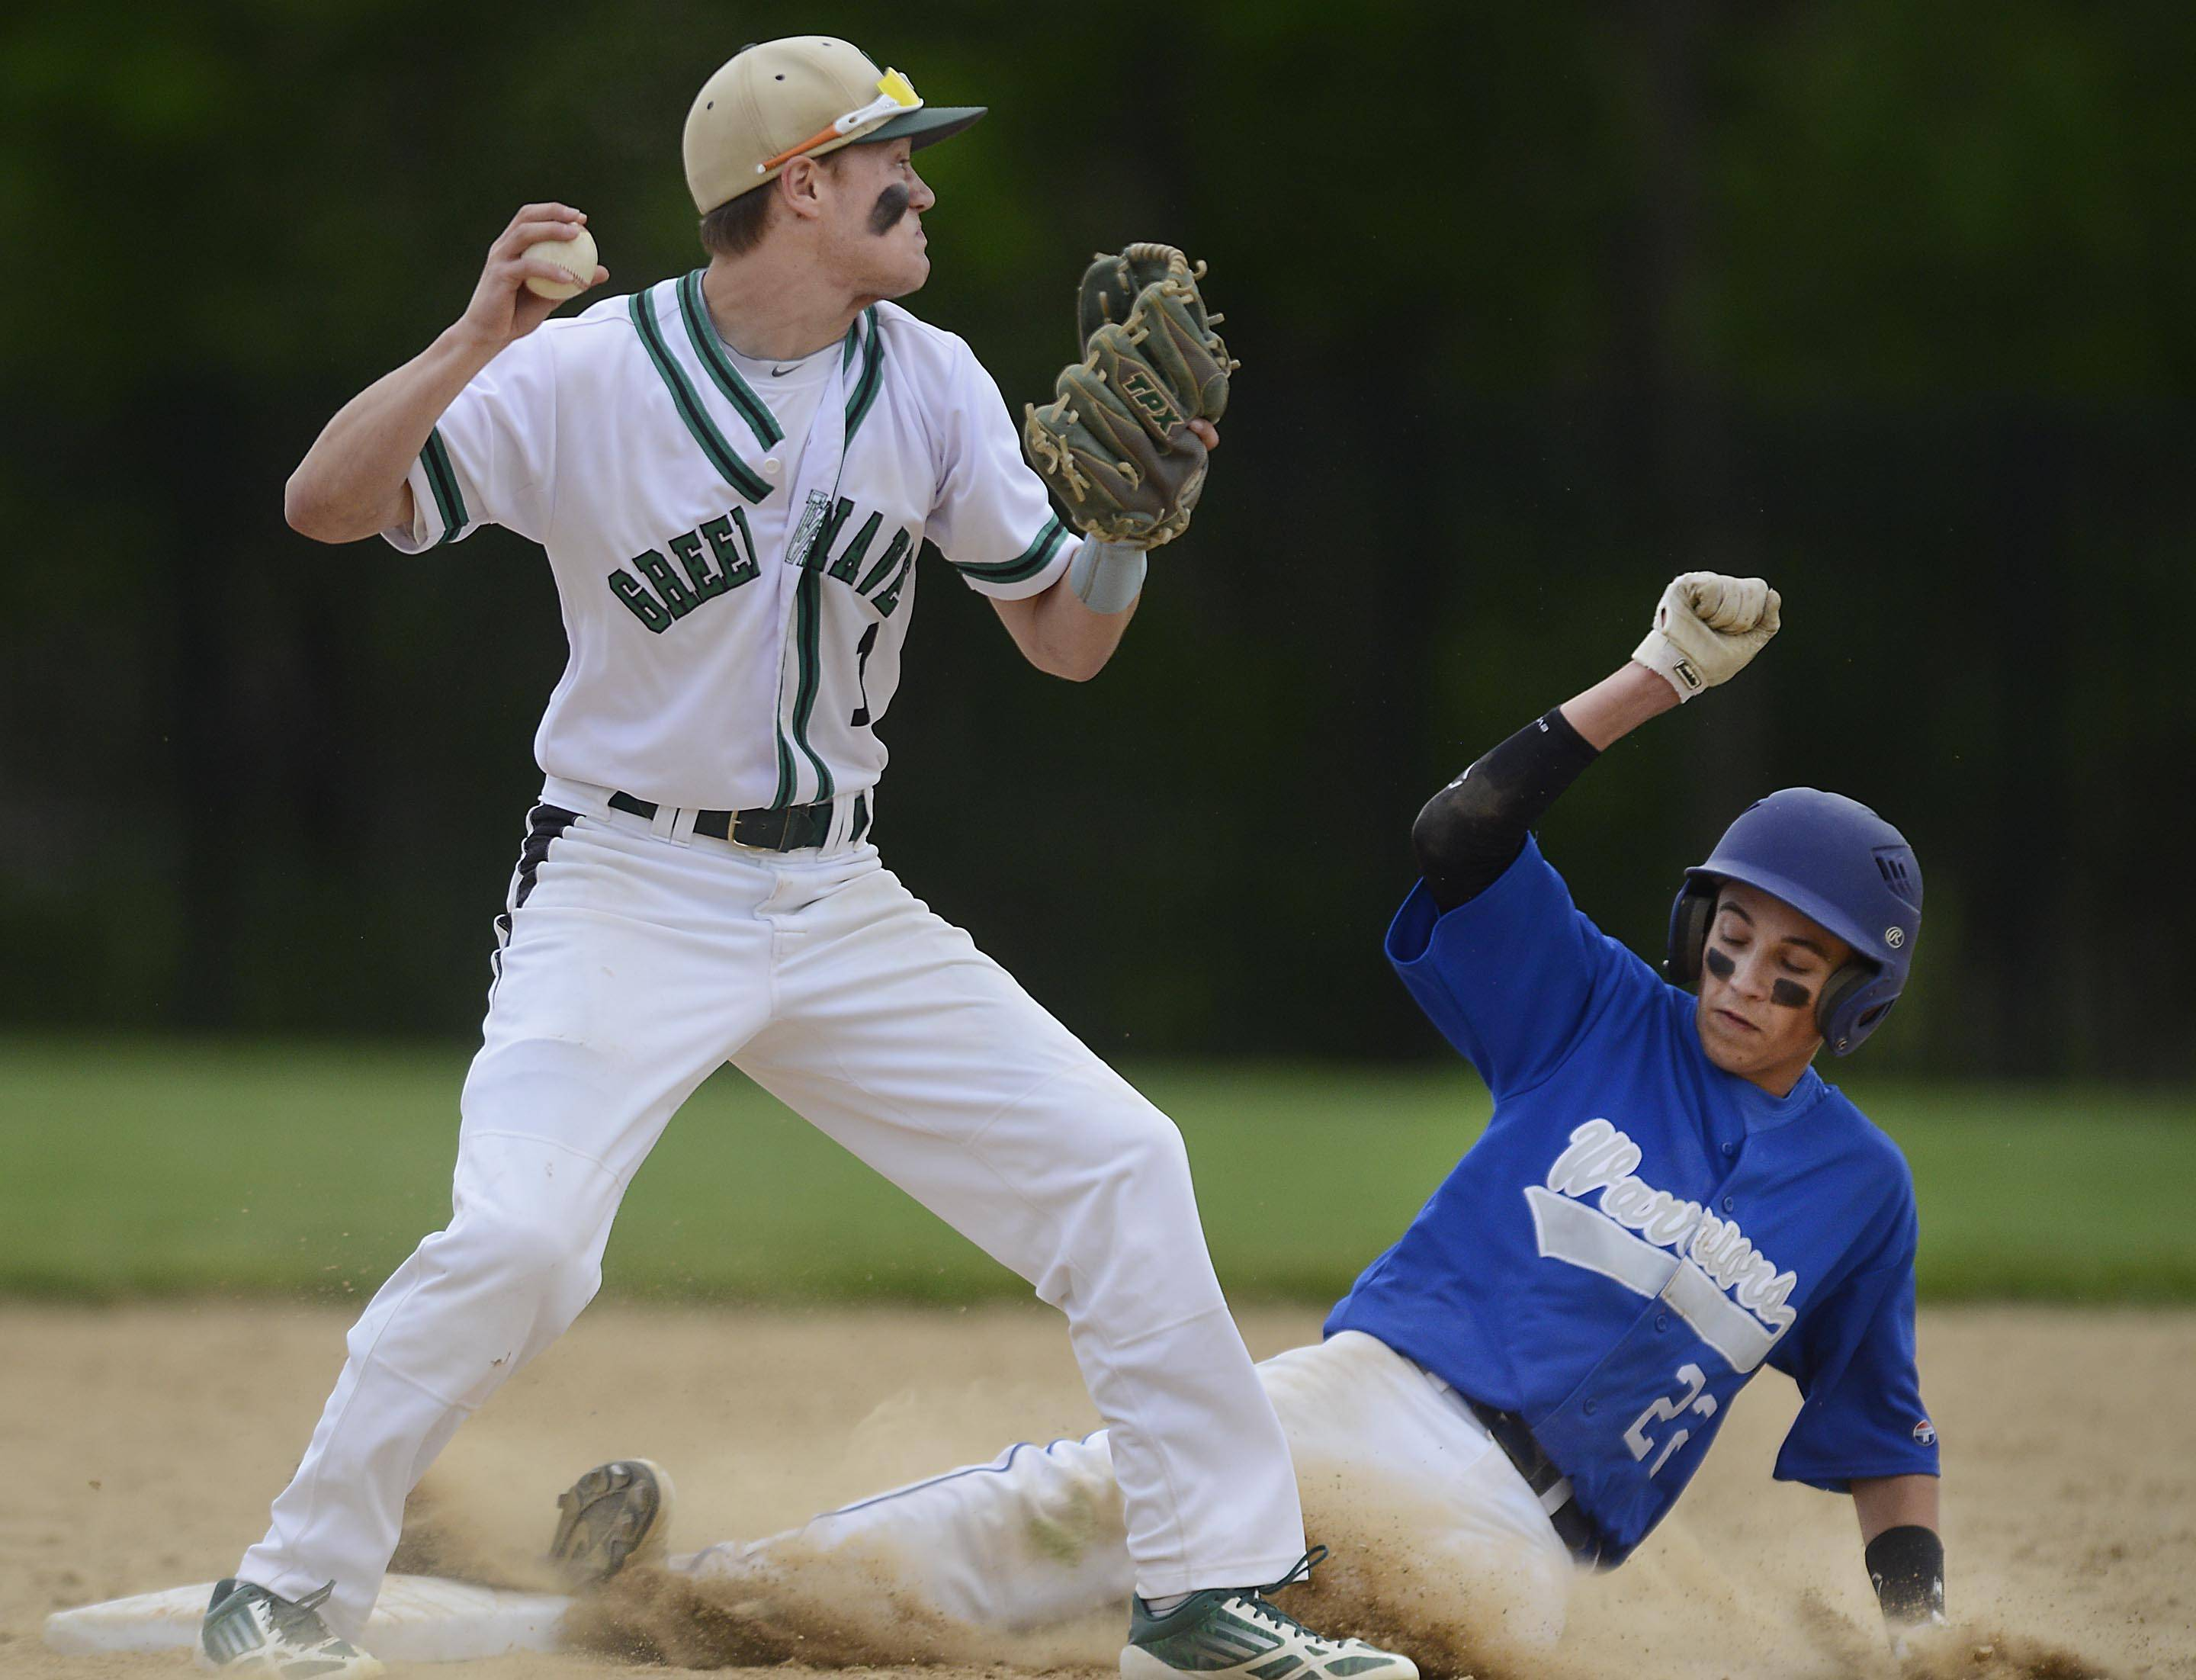 St. Edward's Michael Castoro forces out Westminster Christian's Ian Merlak as second base Monday in the Class 2A regional game at Wing Park in Elgin.